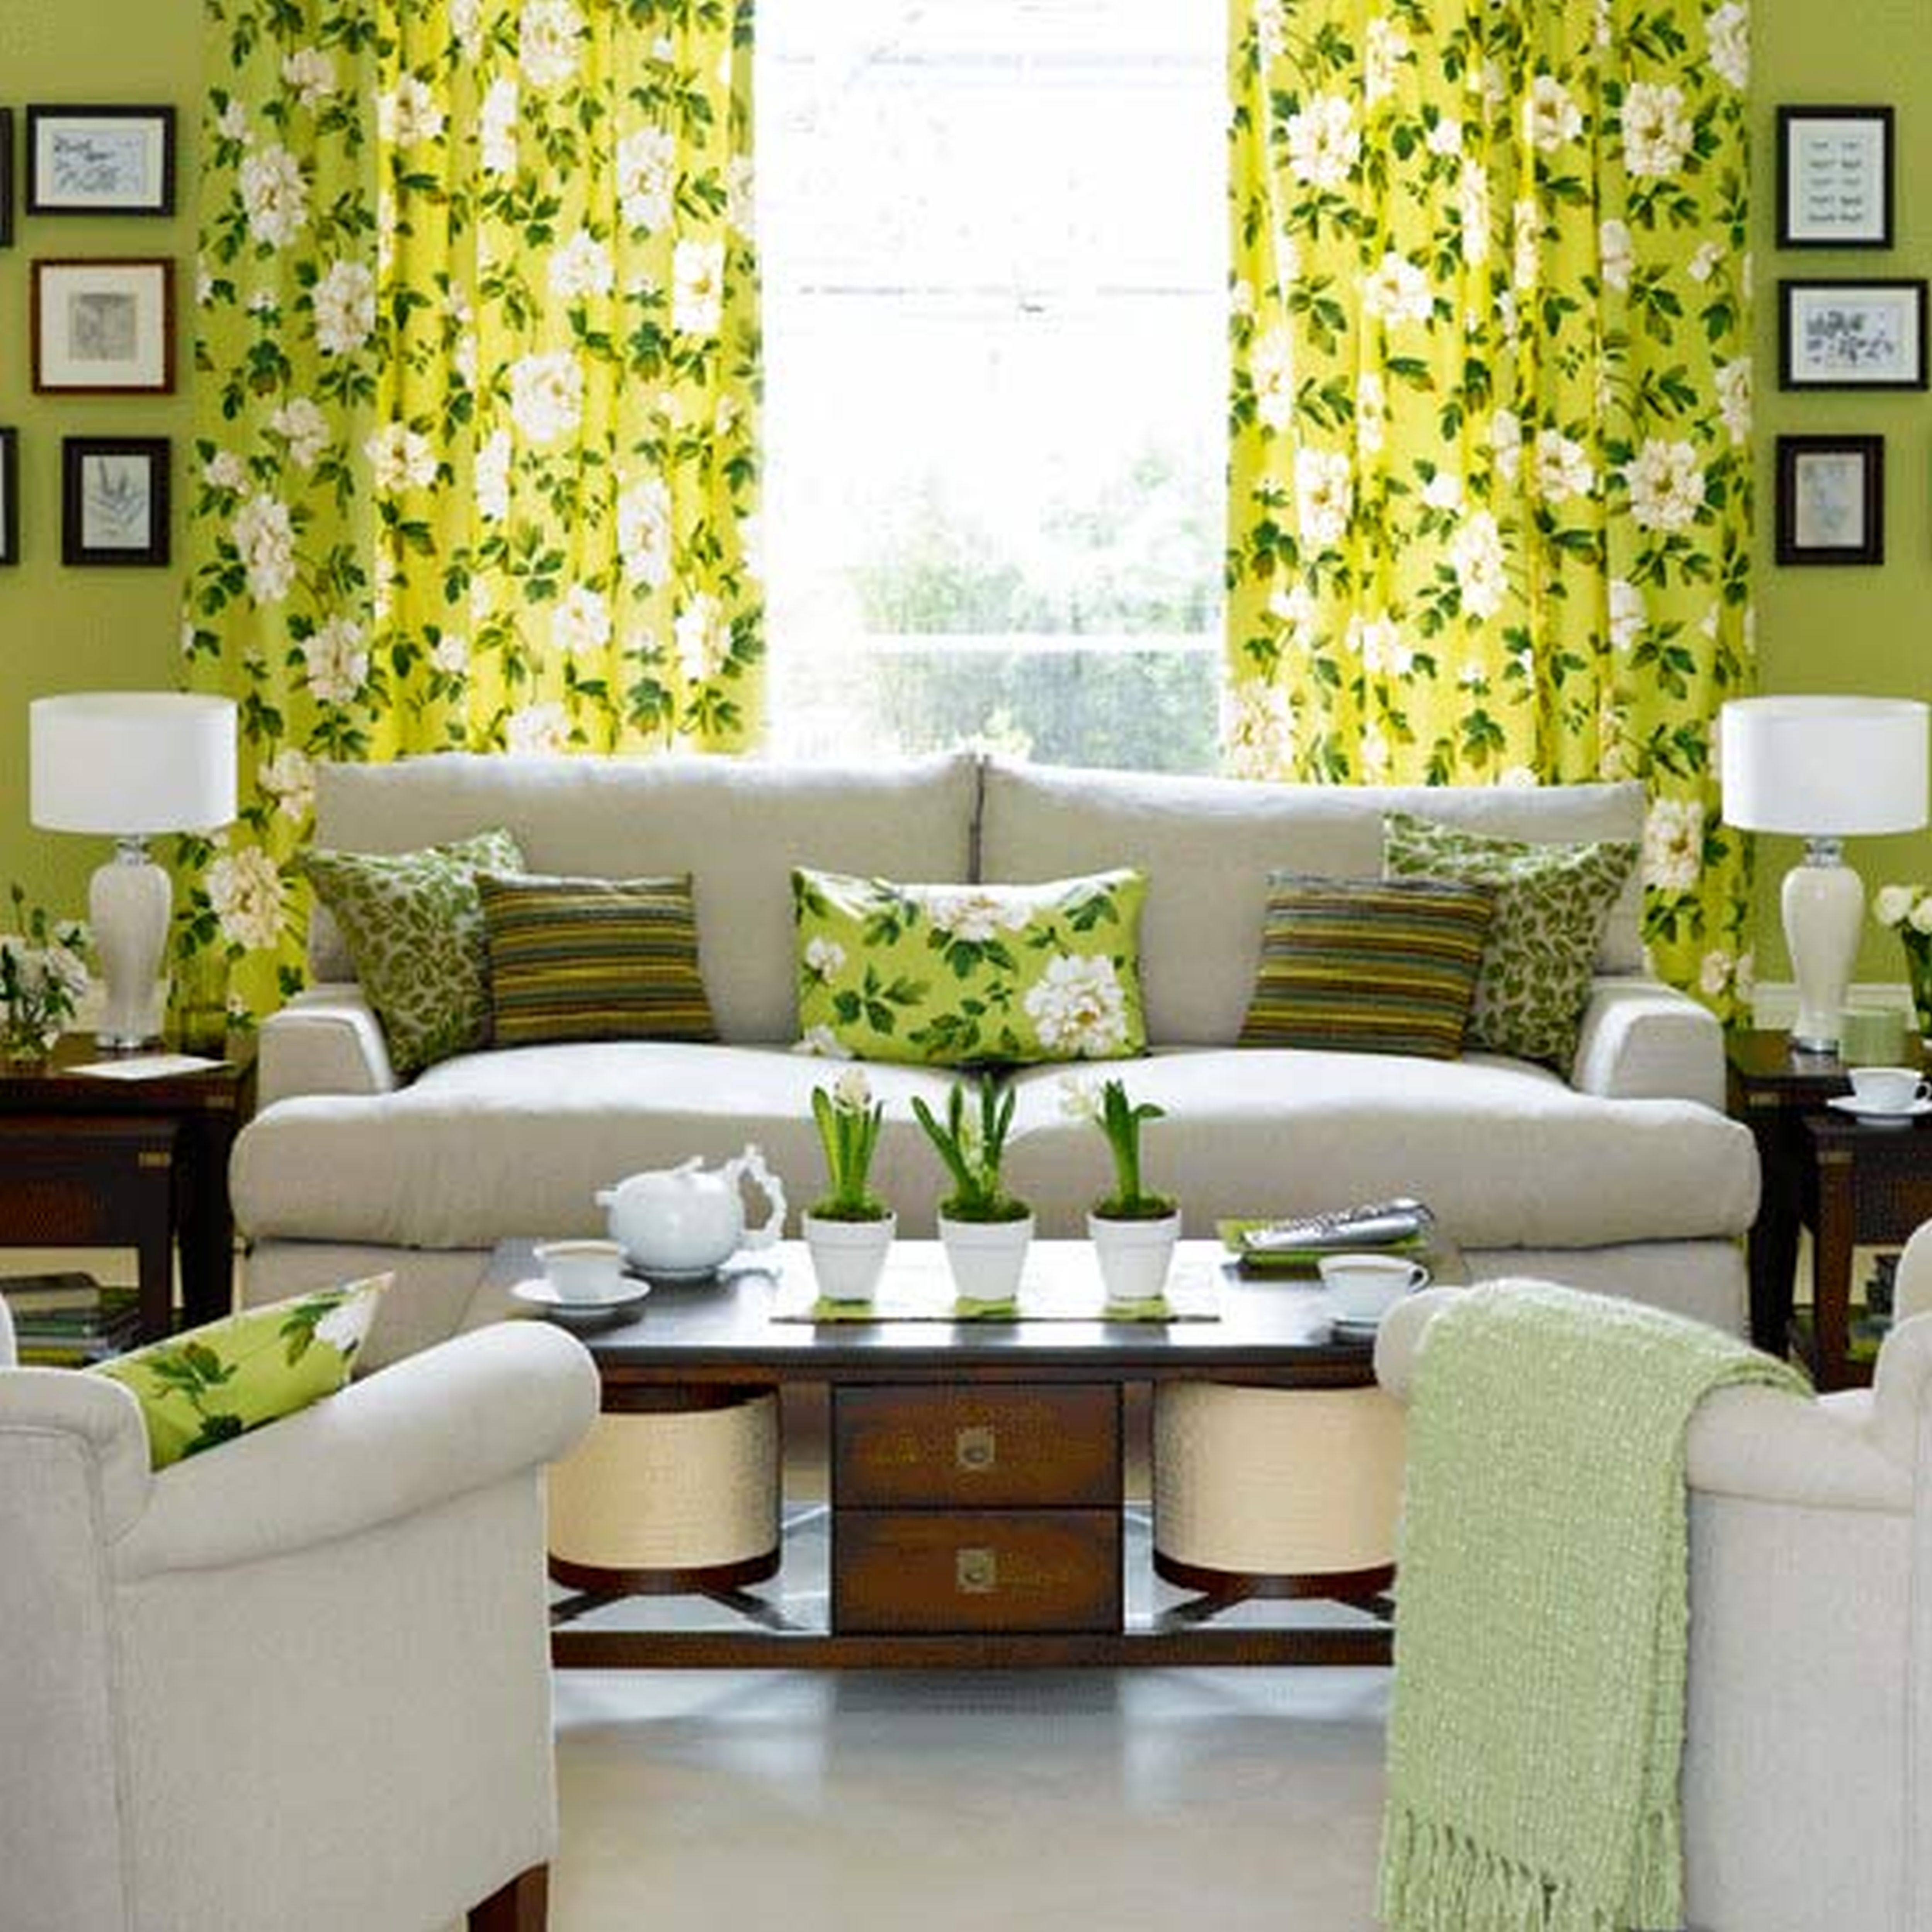 Room These Bright Drapes